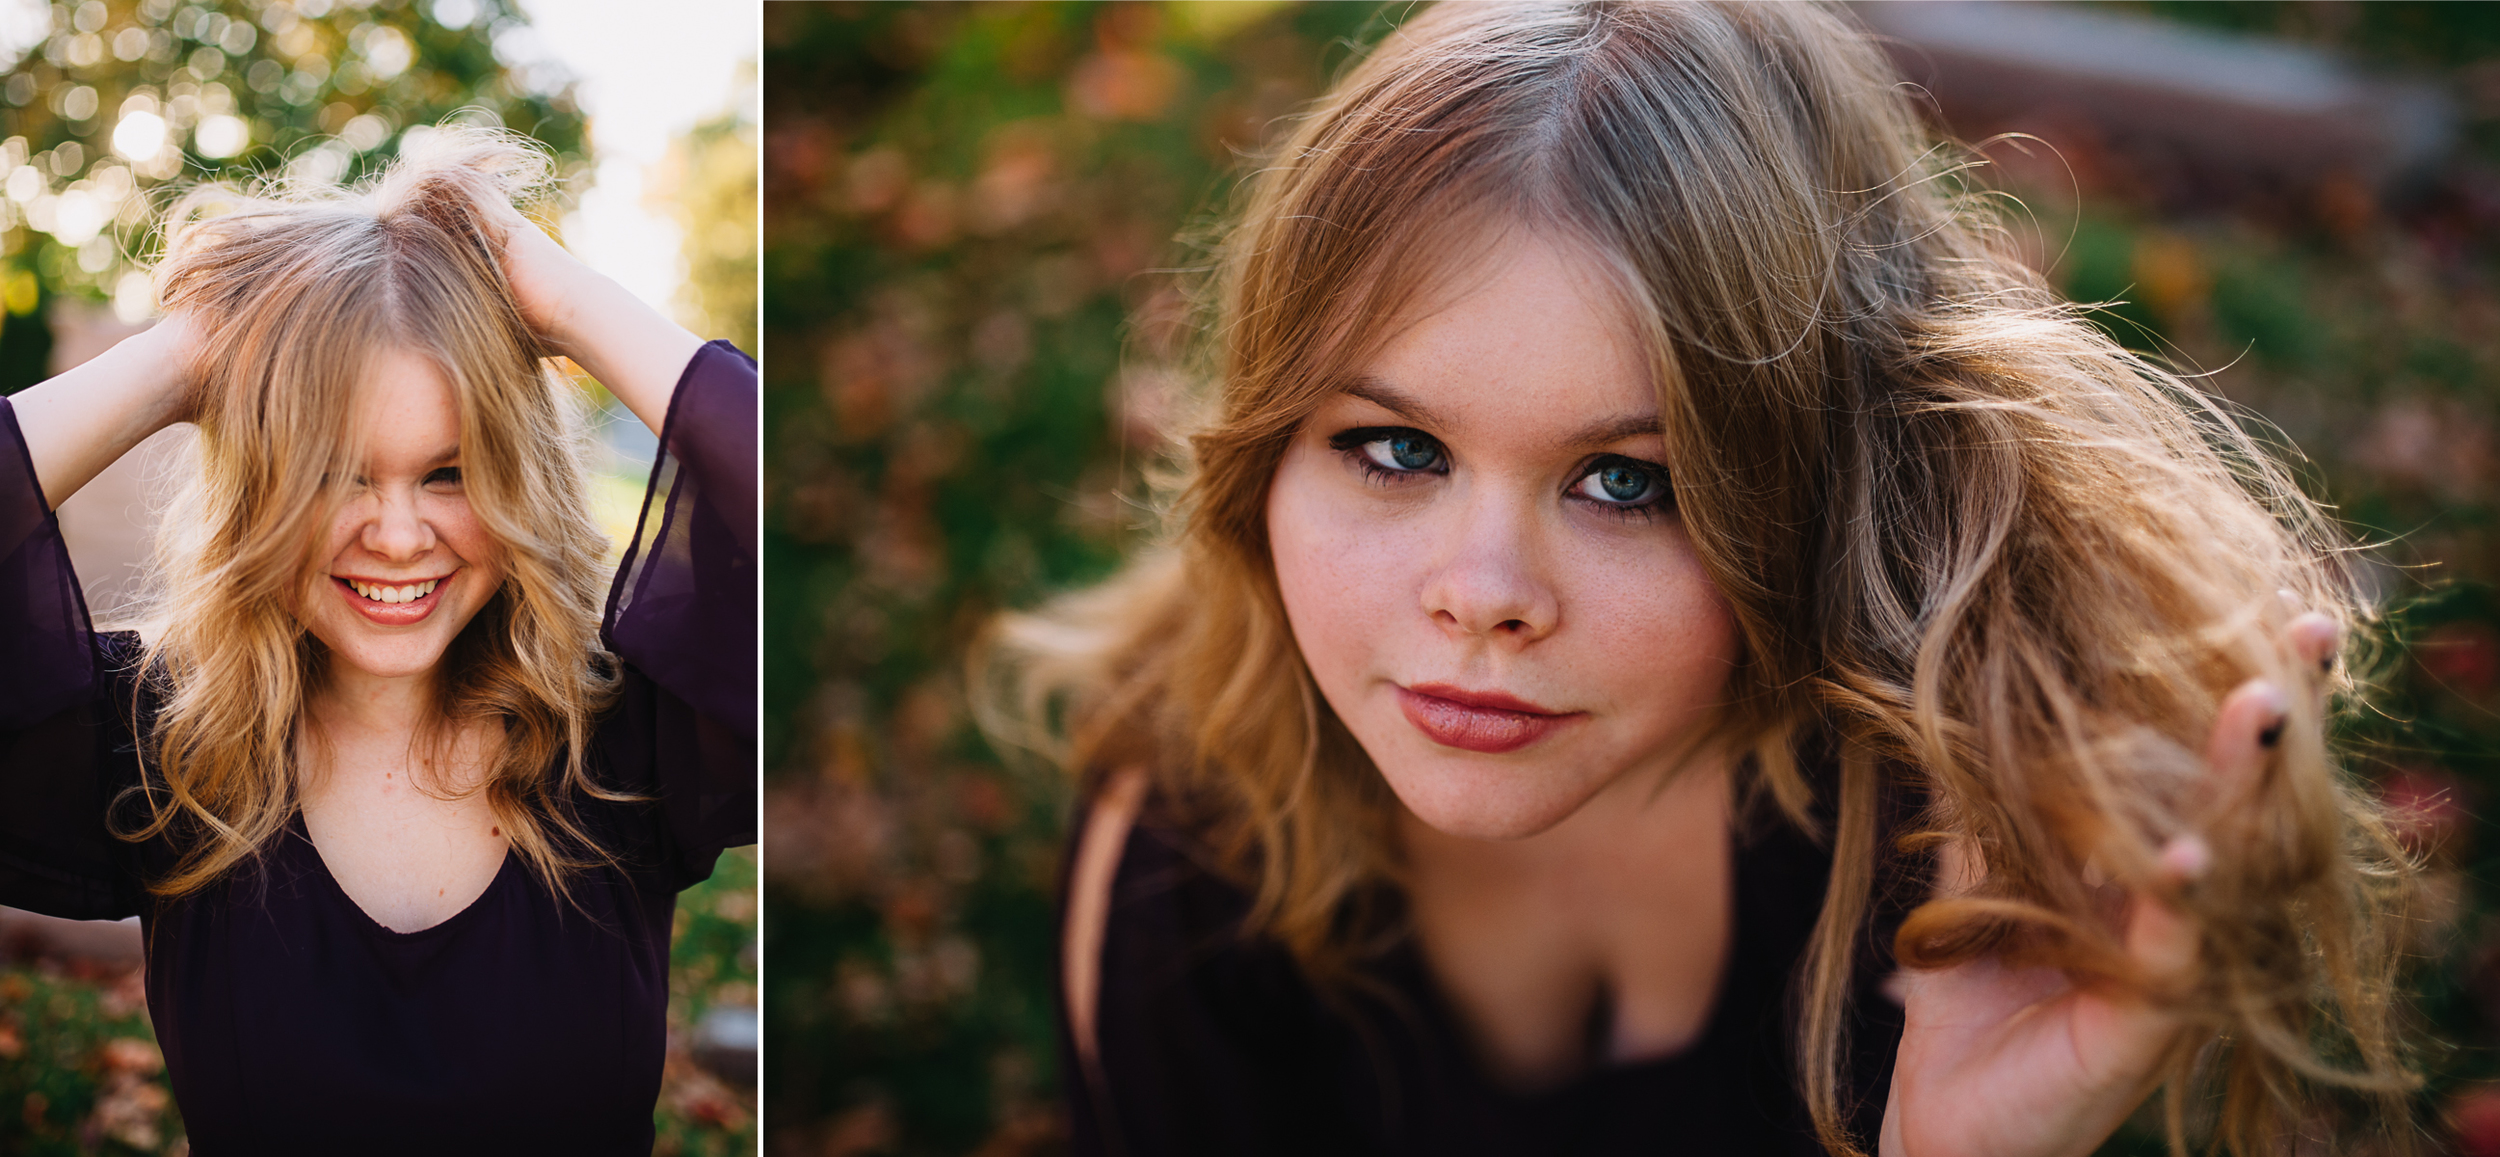 Flower child high school senior photo session in Lincoln, Nebraska by Tara Polly Photography.